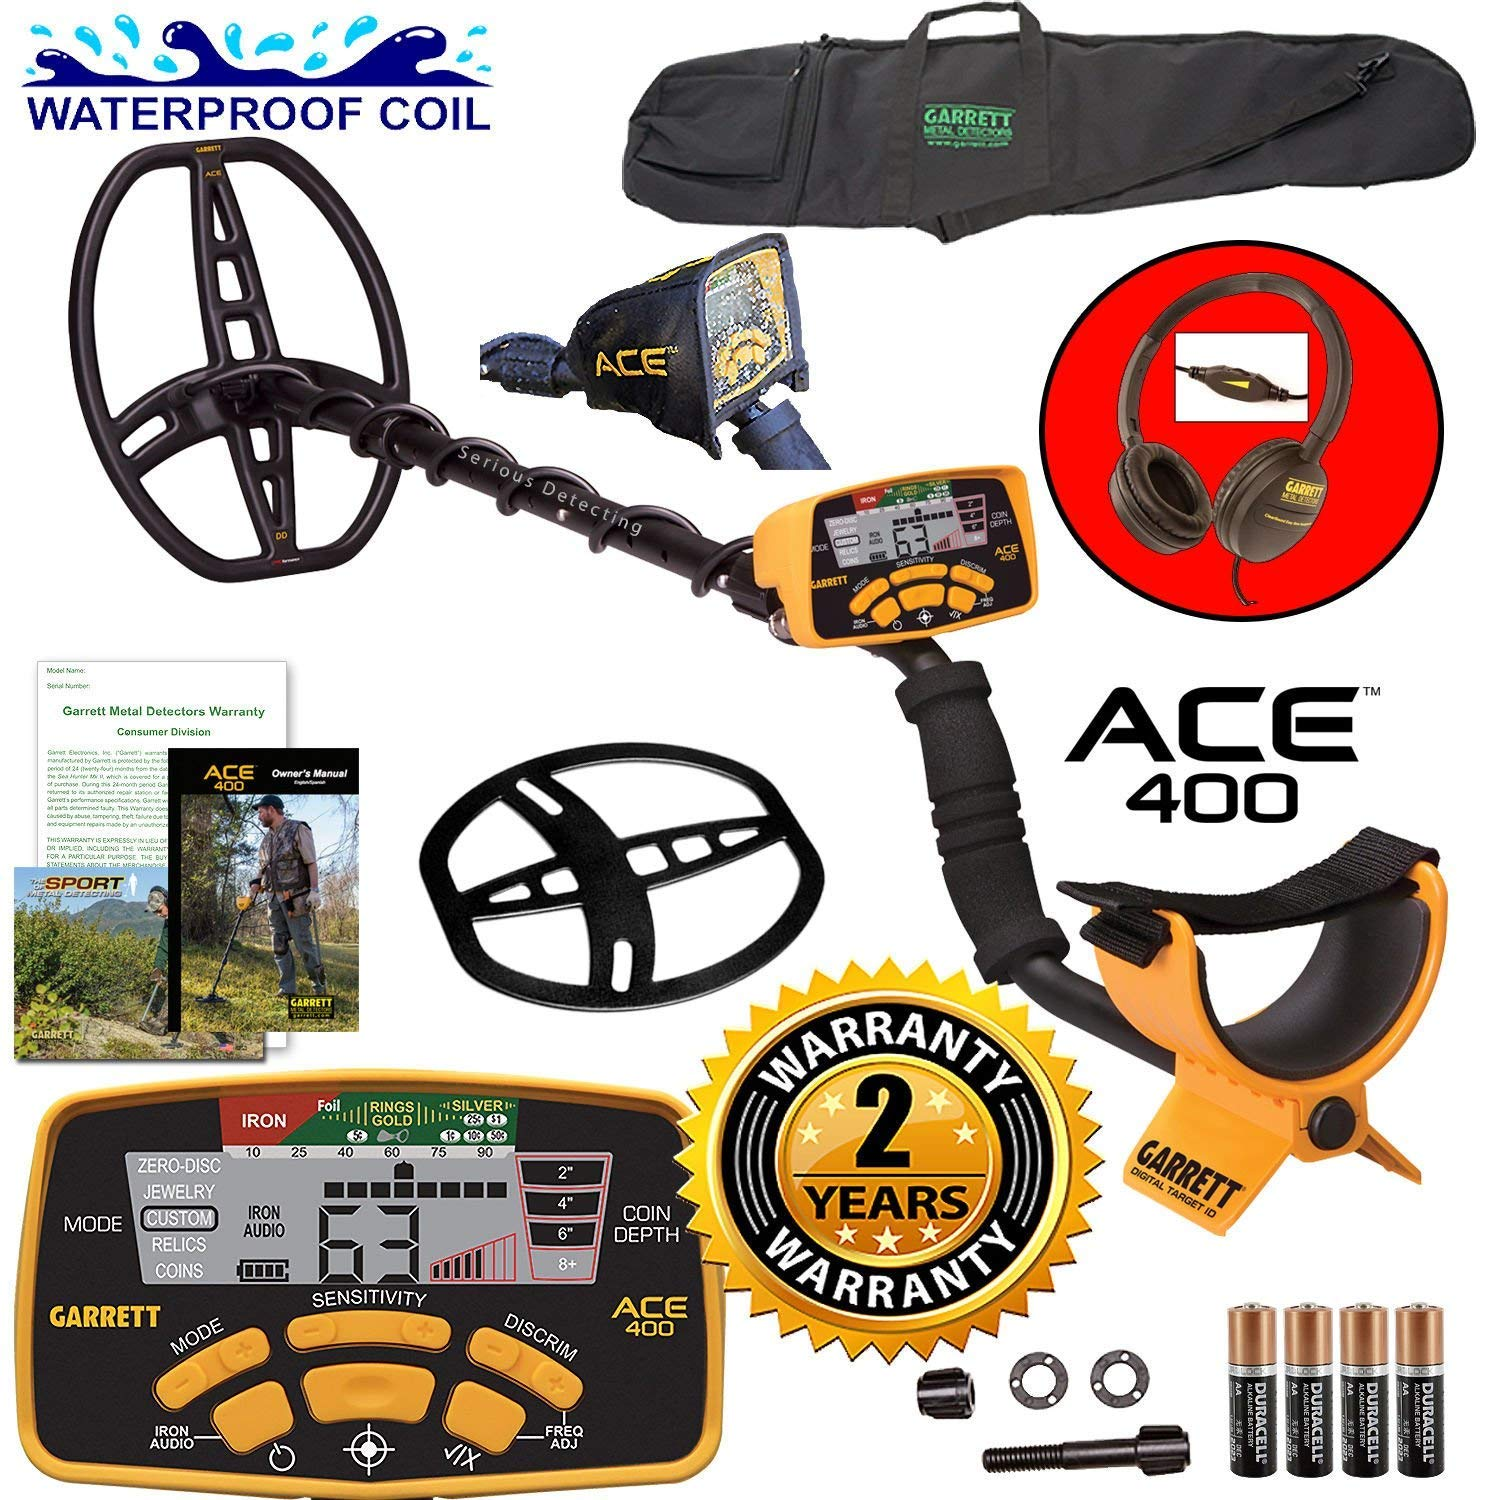 Garrett ACE 400 Metal Detector with DD Waterproof Search Coil and Carry Bag